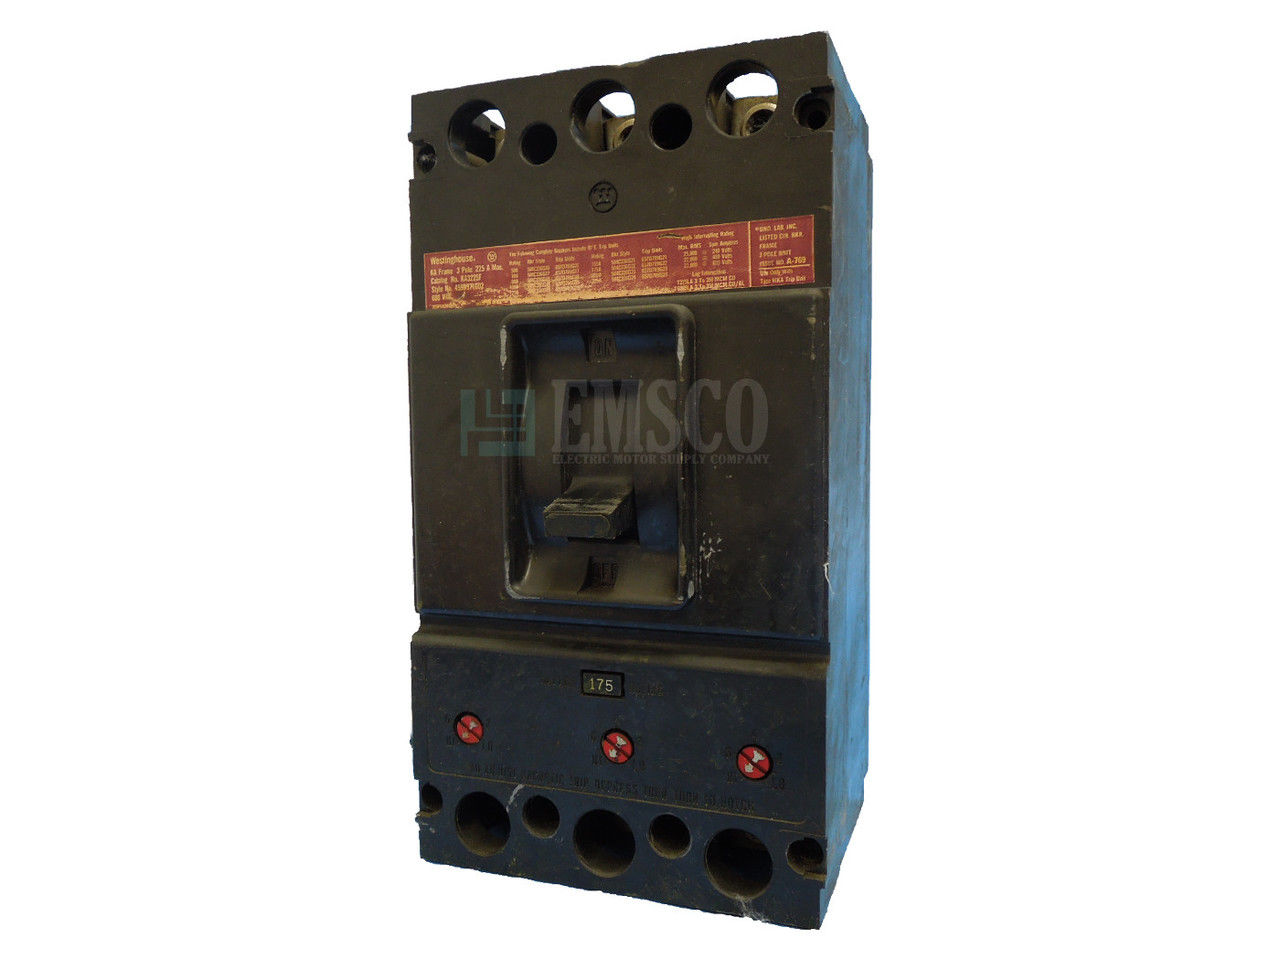 Picture of KA3175 Westinghouse Circuit Breaker